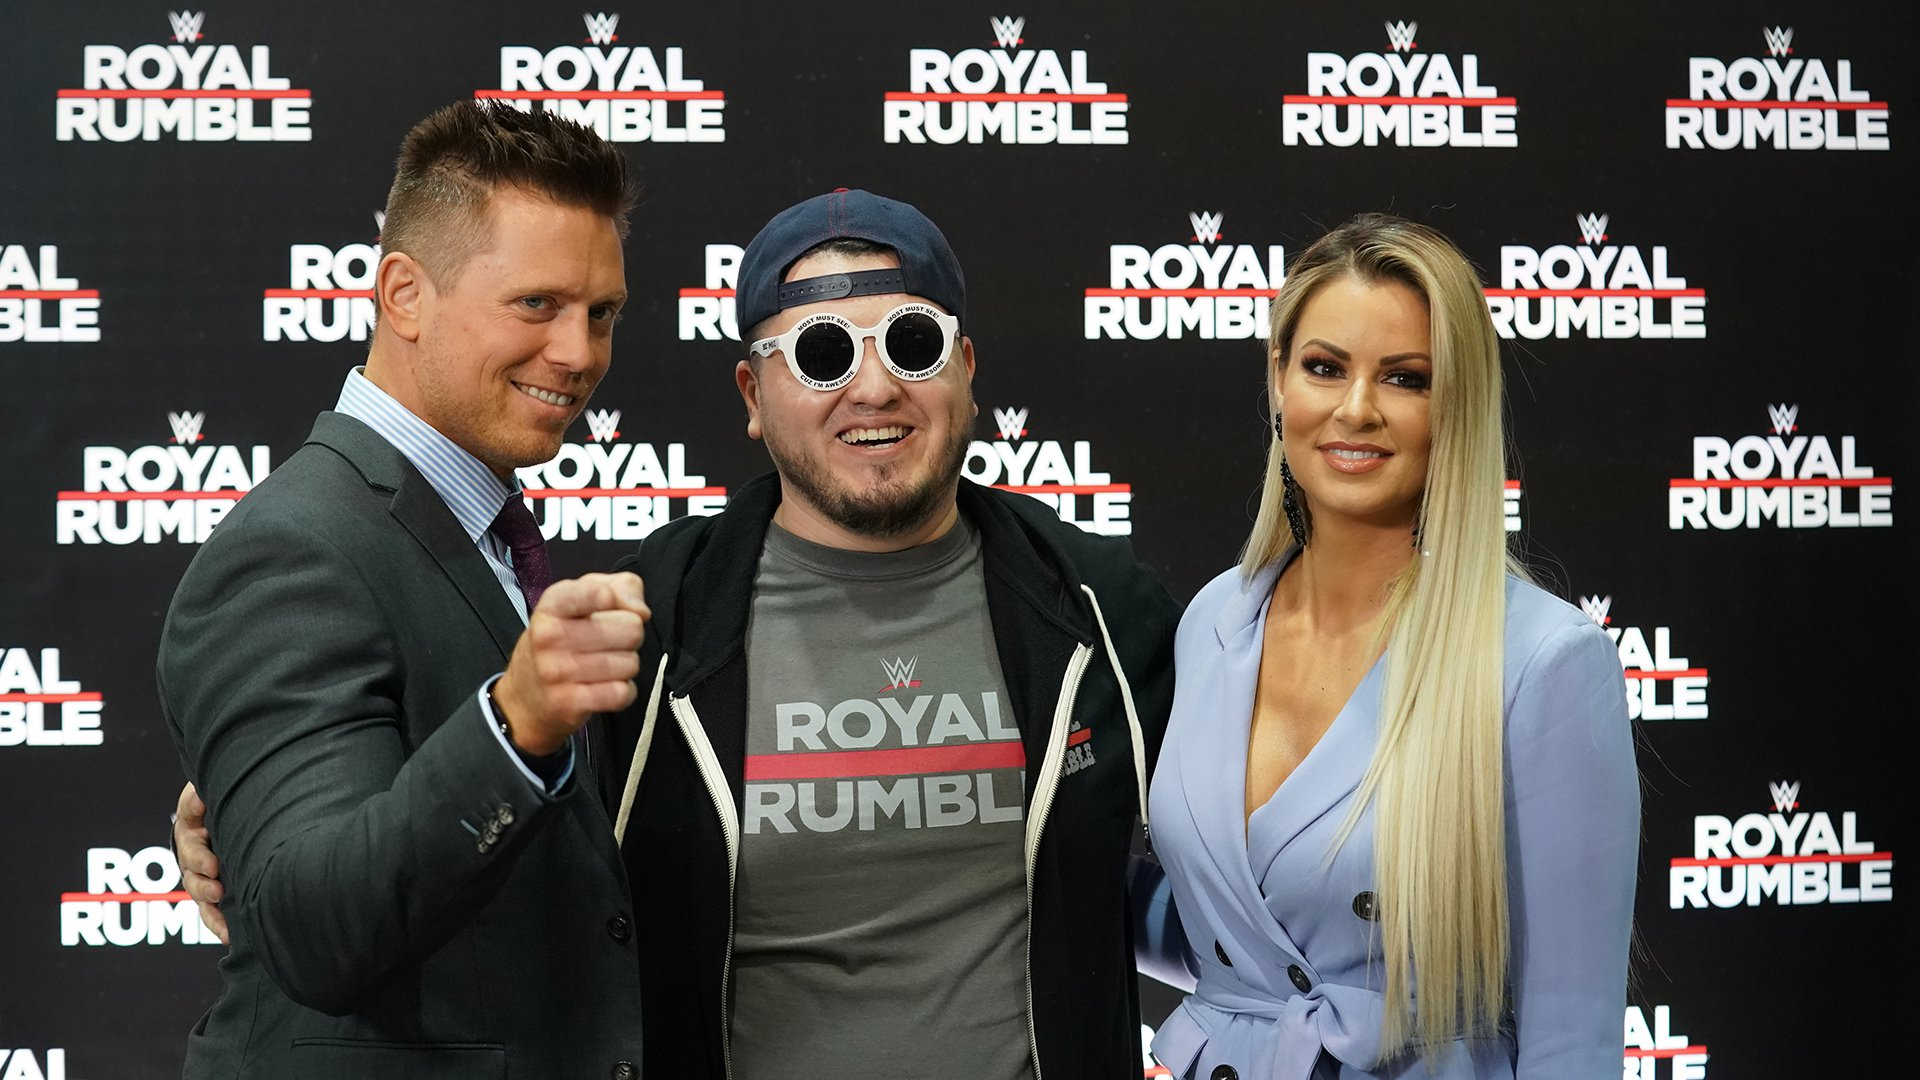 Royal Rumble Axxess 2019 - Day 2, Session 2: photos